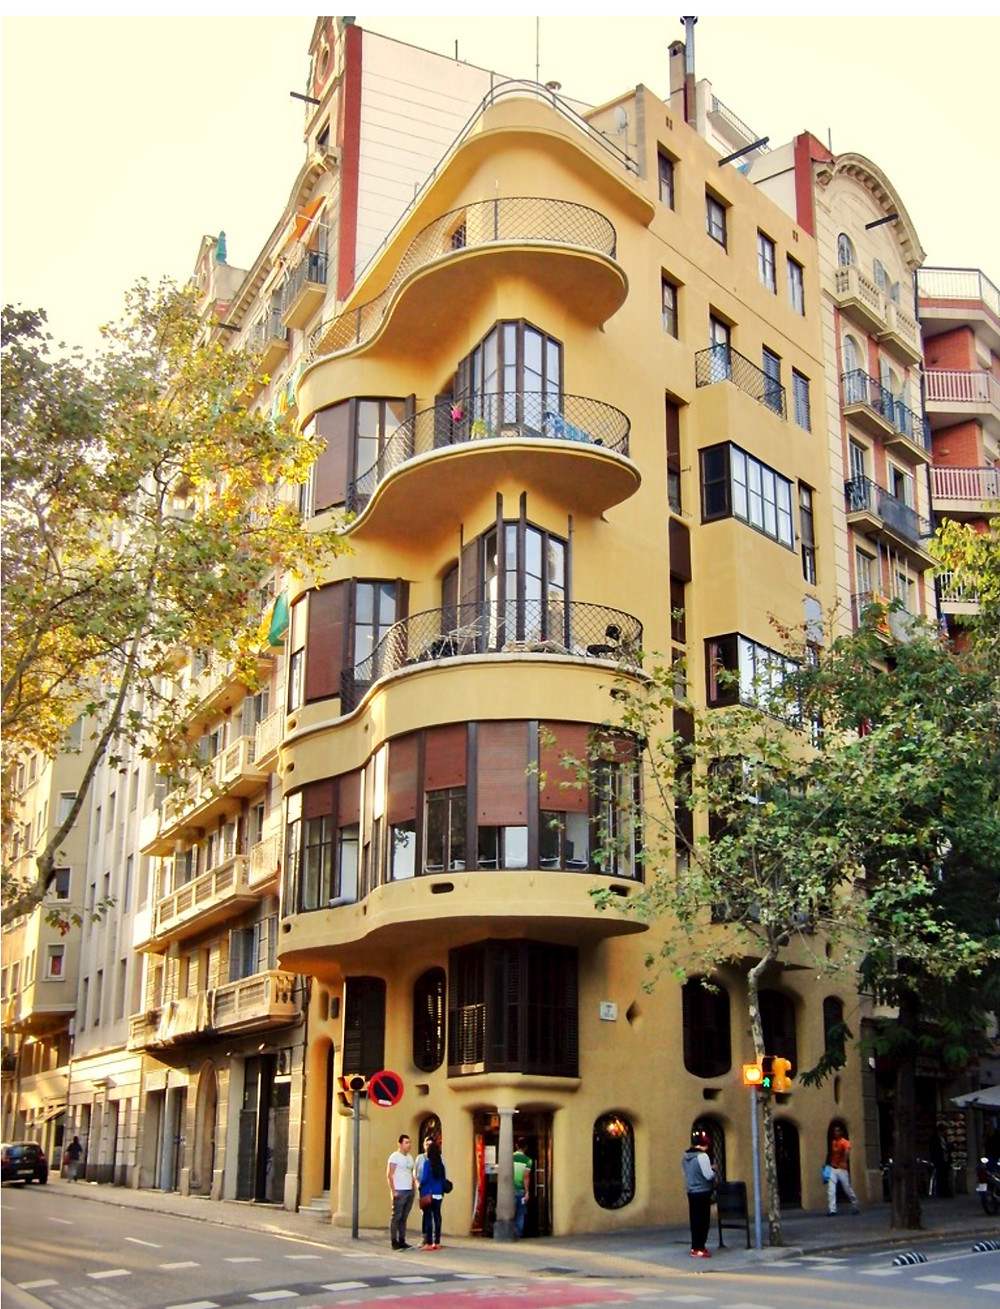 the golden facade of Casa Plannels